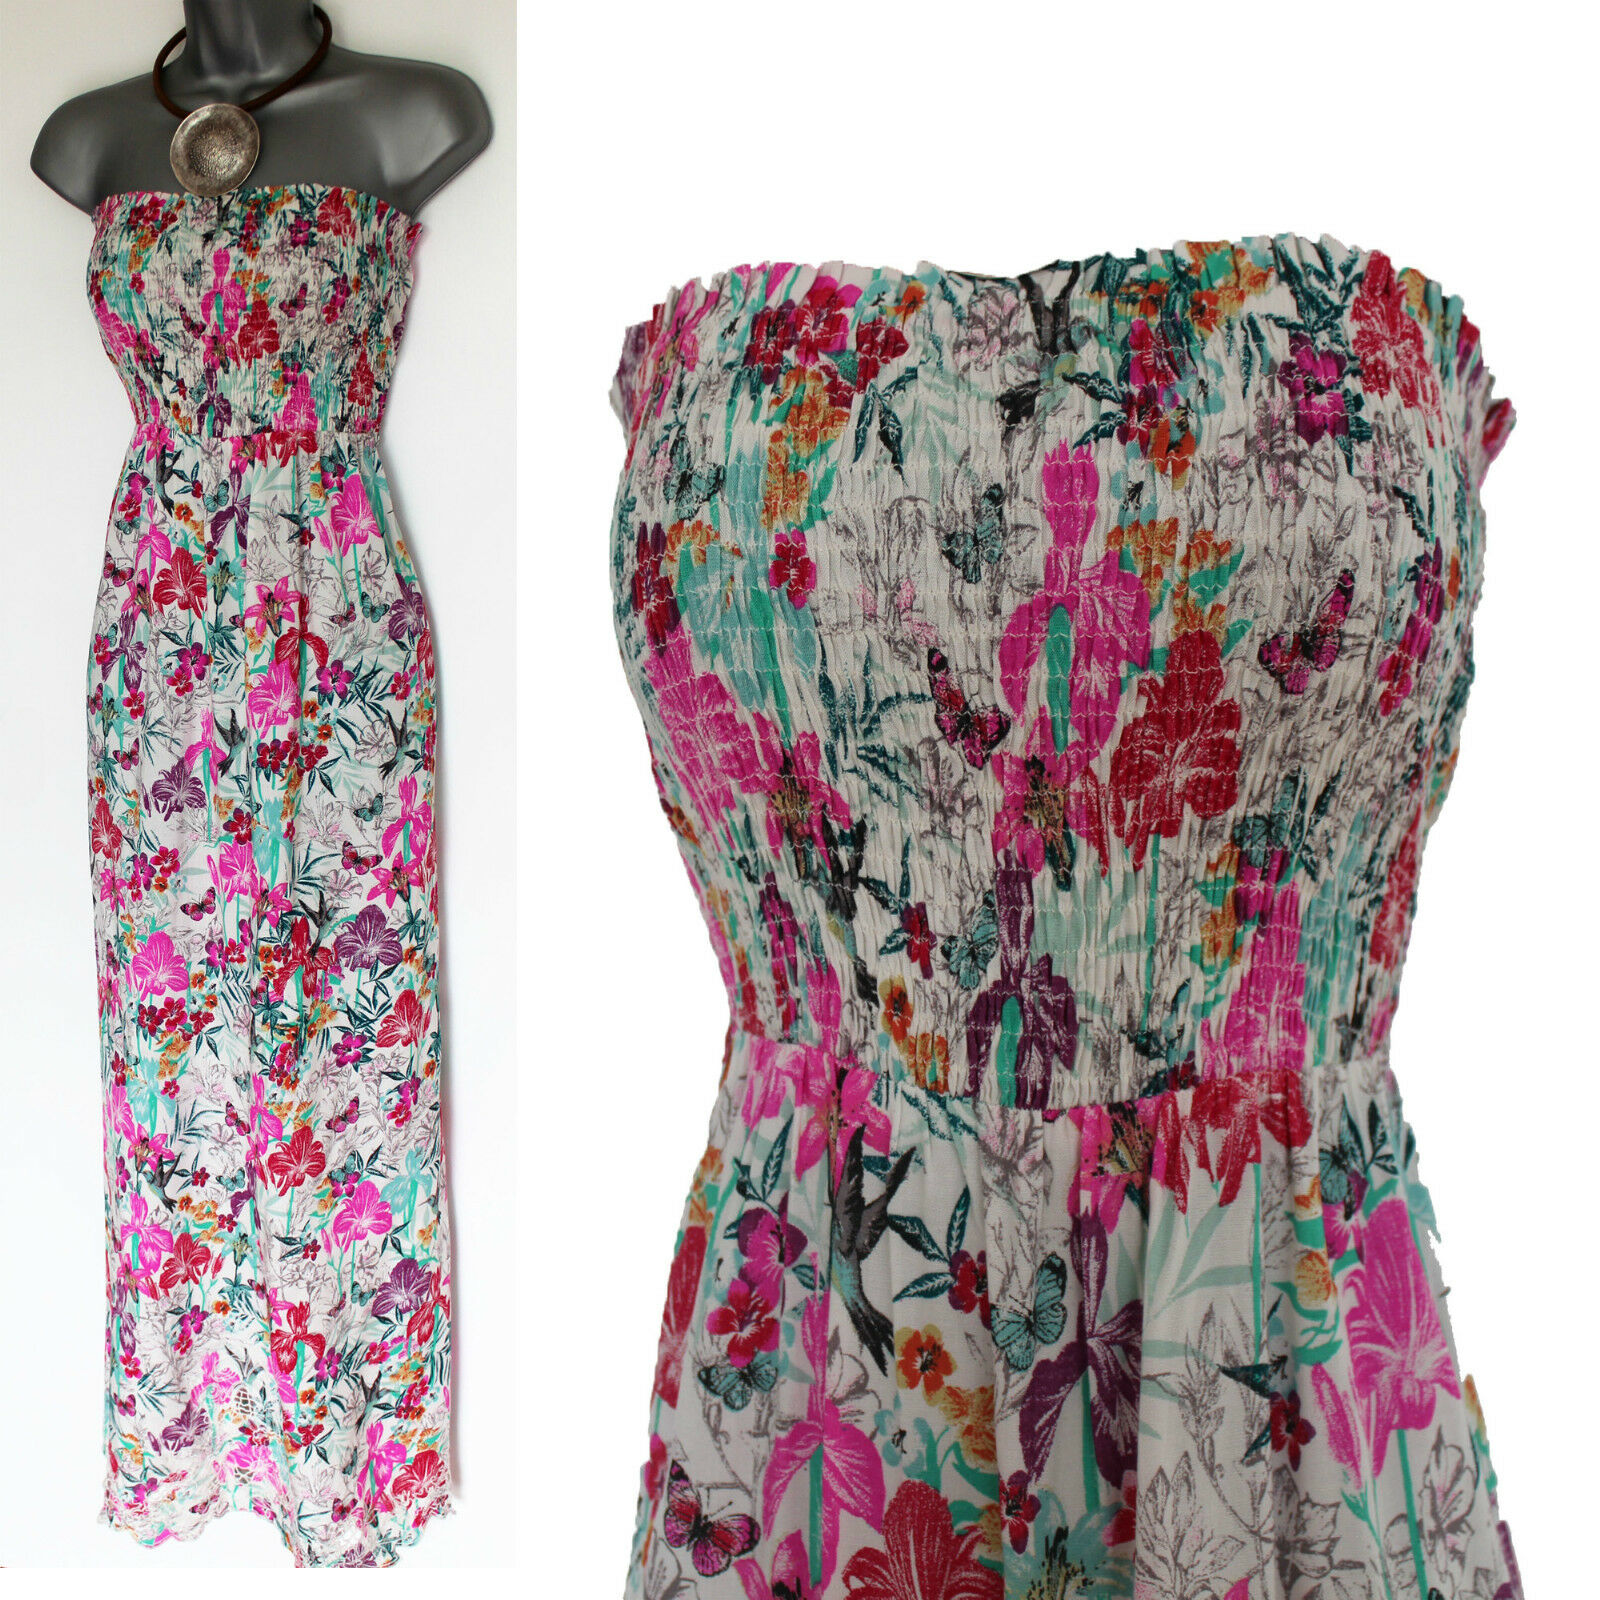 MONSOON Floral Print Embroidered Strapless Beach Summer Maxi Dress S Holiday